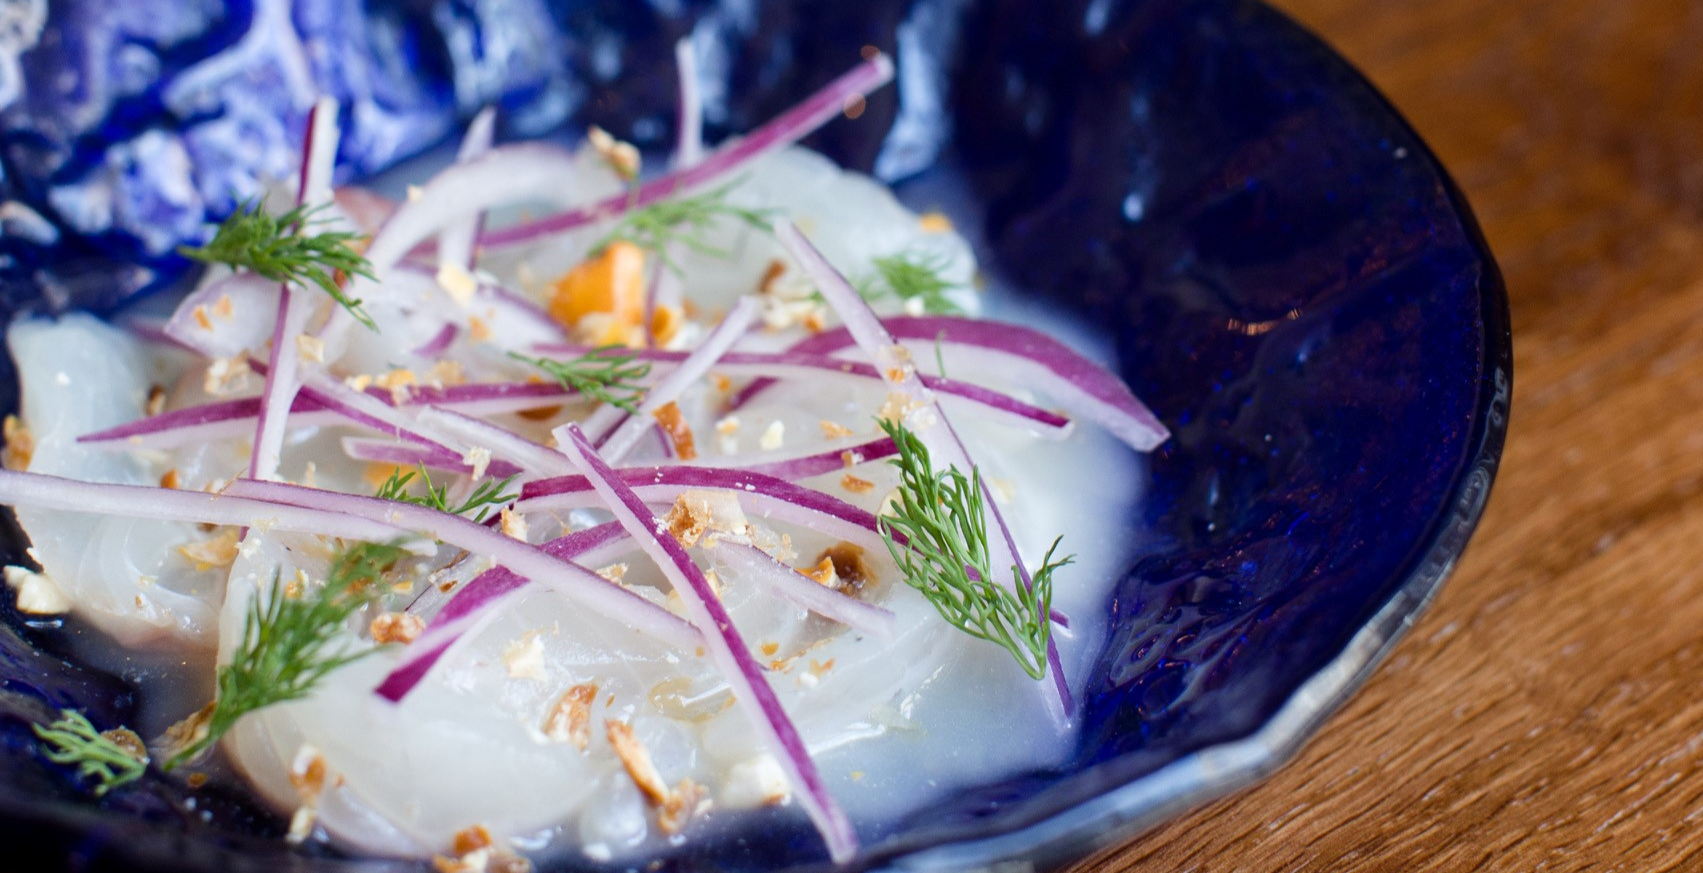 THE ULTIMATE CEVICHE CELEBRATION AT FLORAL BY LIMA